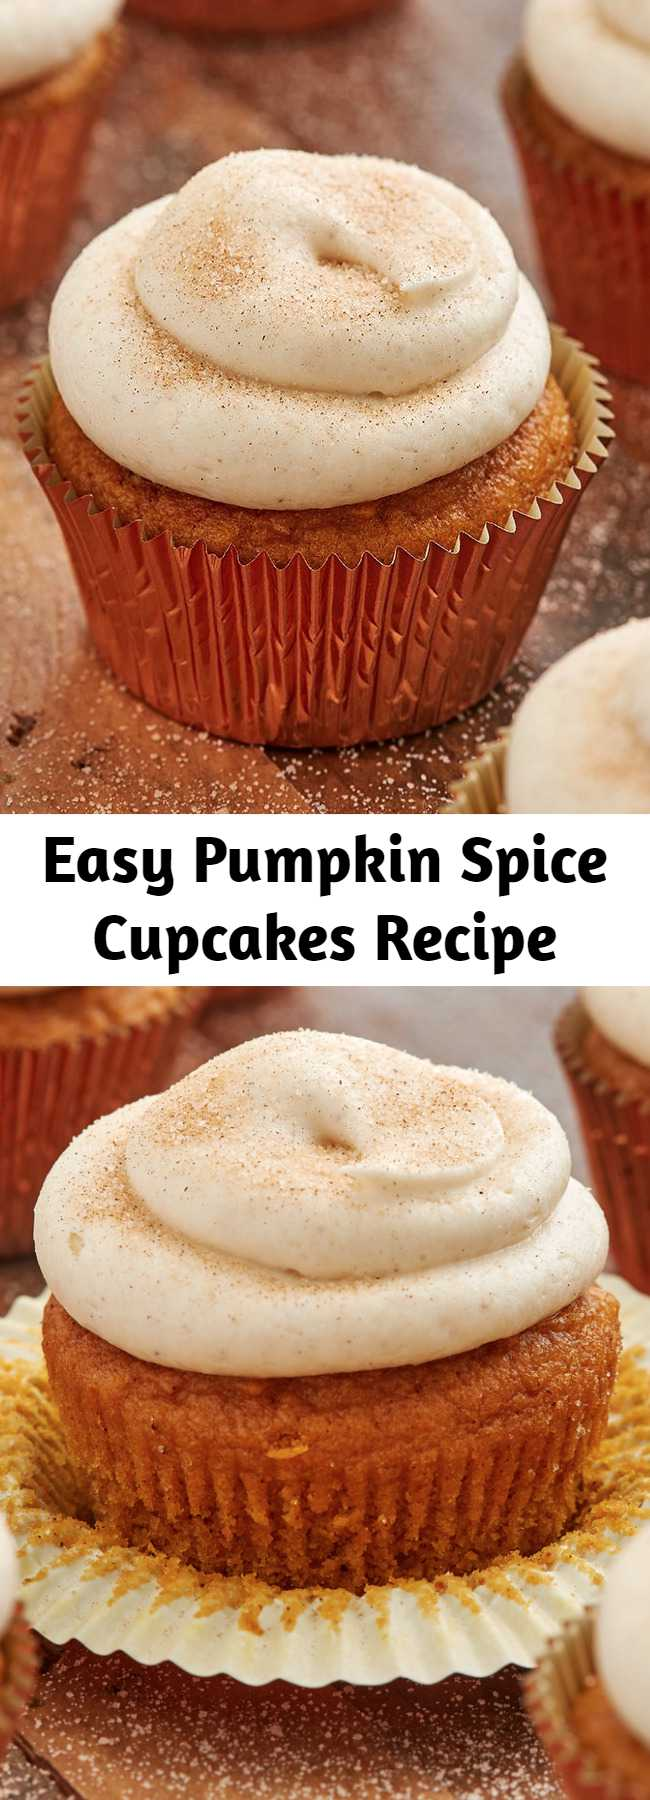 Easy Pumpkin Spice Cupcakes Recipe - If you are looking for a perfect pumpkin cupcake, look no further. These easy sweets are full of pumpkin spice and topped with a simple cream cheese frosting. We love it topped with some cinnamon sugar, but more pumpkin spice would also be delicious. Put these on the top of your baking list this fall!